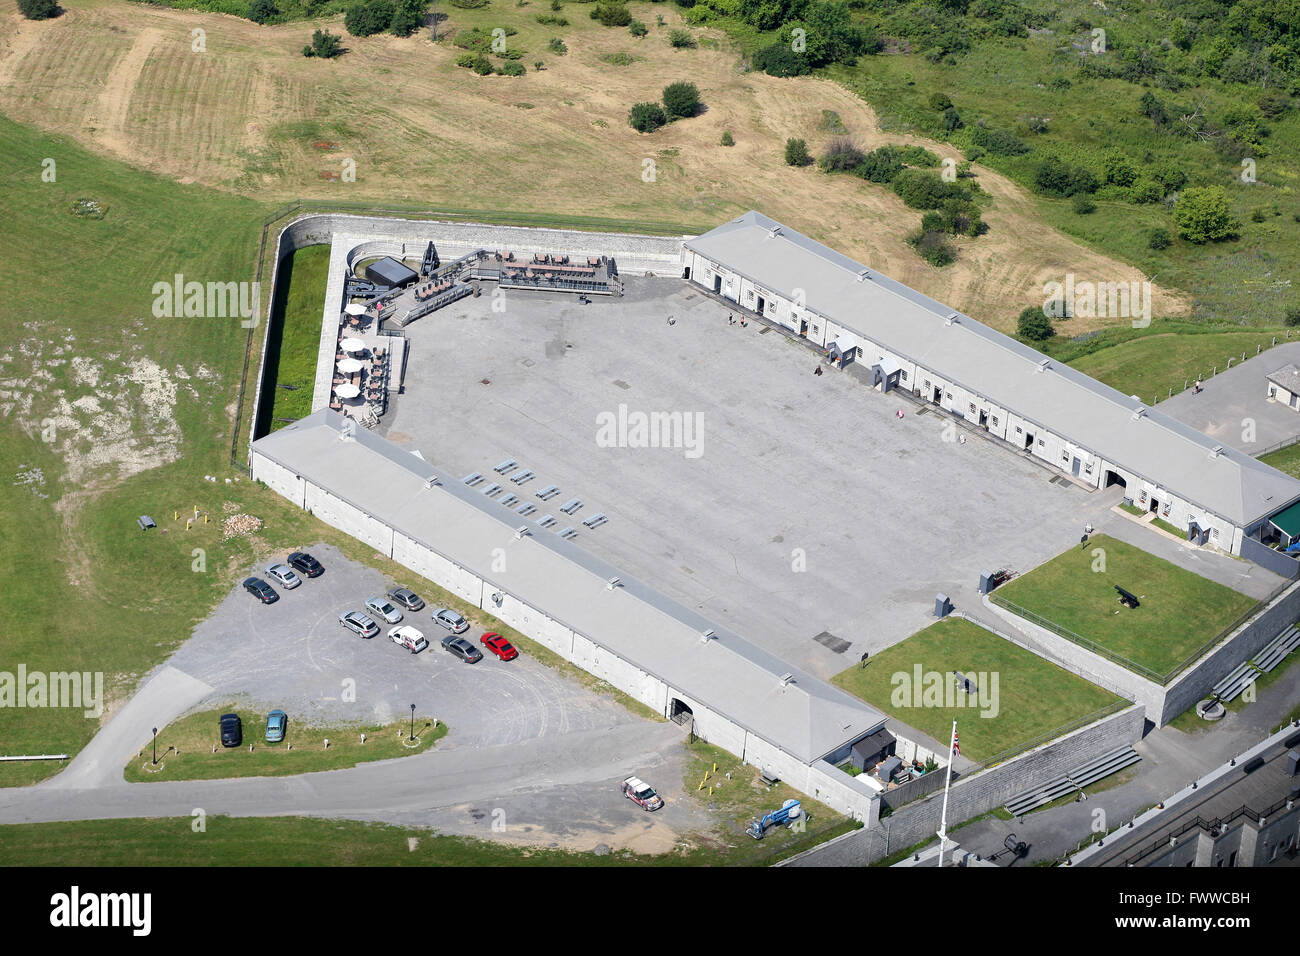 Aerial view of Fort Henry in Kingston, Ont., on June 28, 2014. - Stock Image